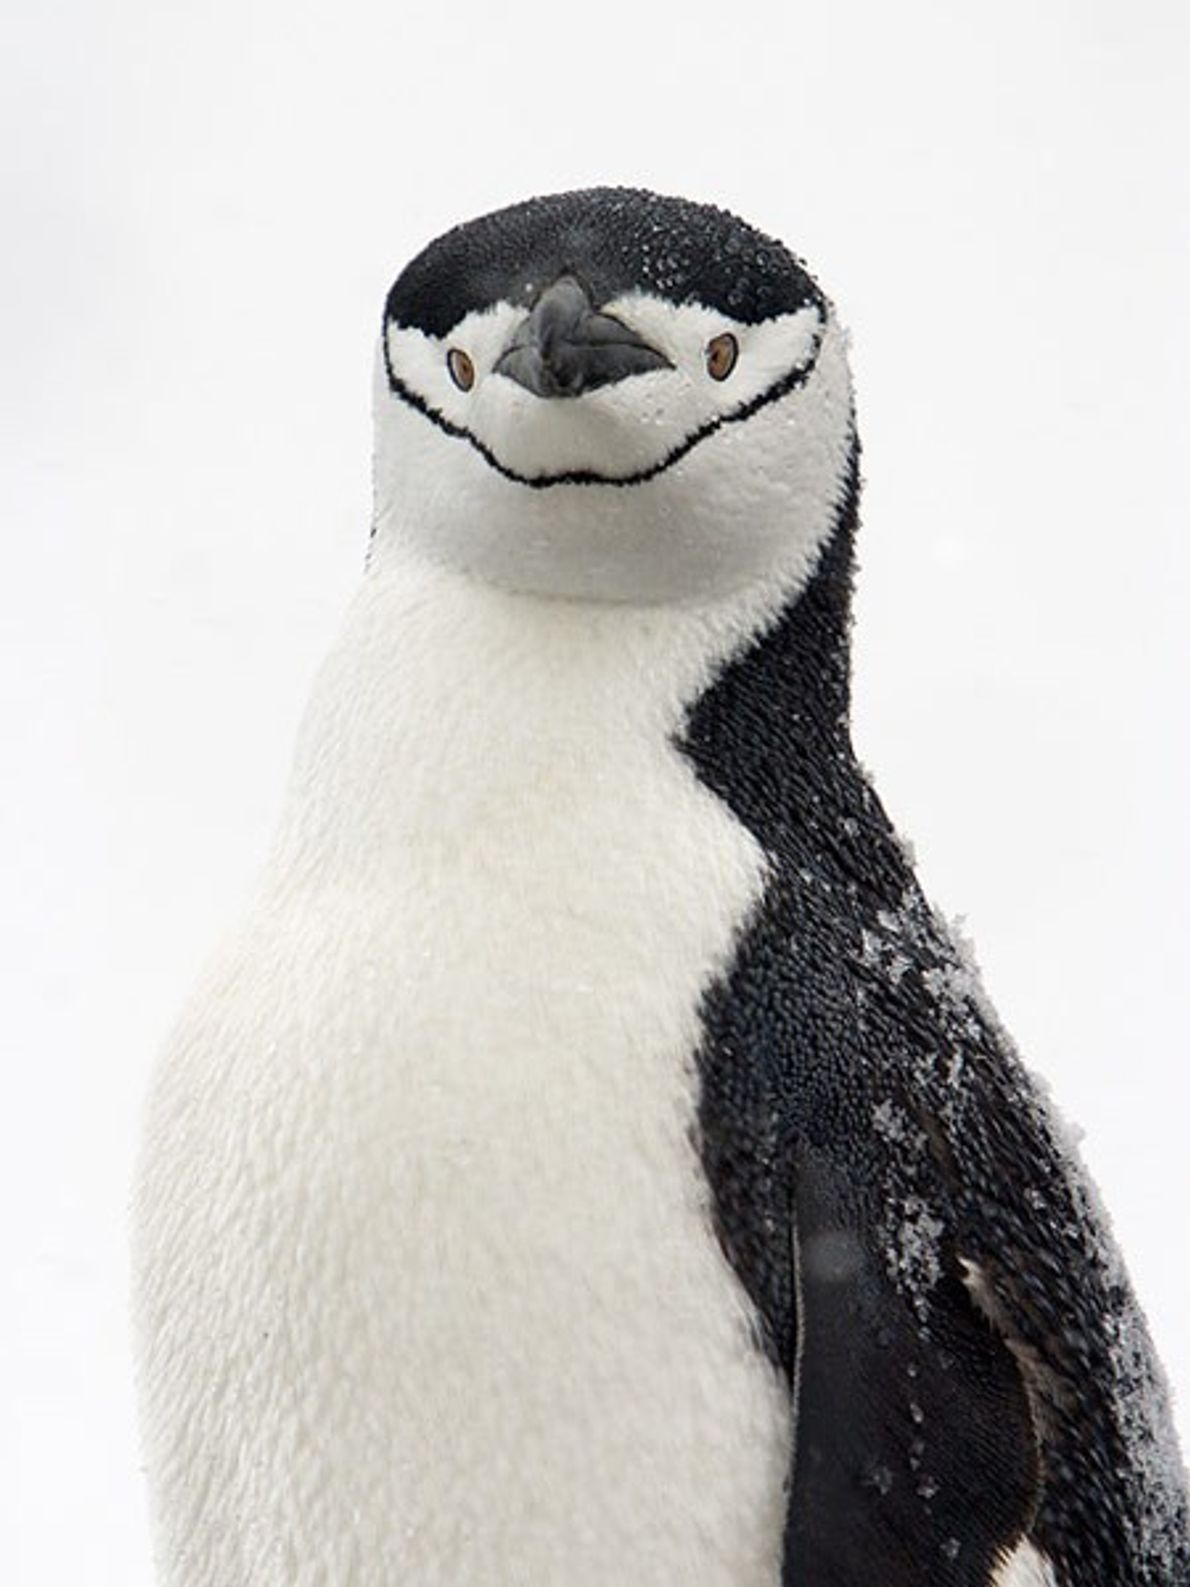 Named for the thin black strip beneath its 'chin' the chinstrap penguin is indigenous to Antarctica.